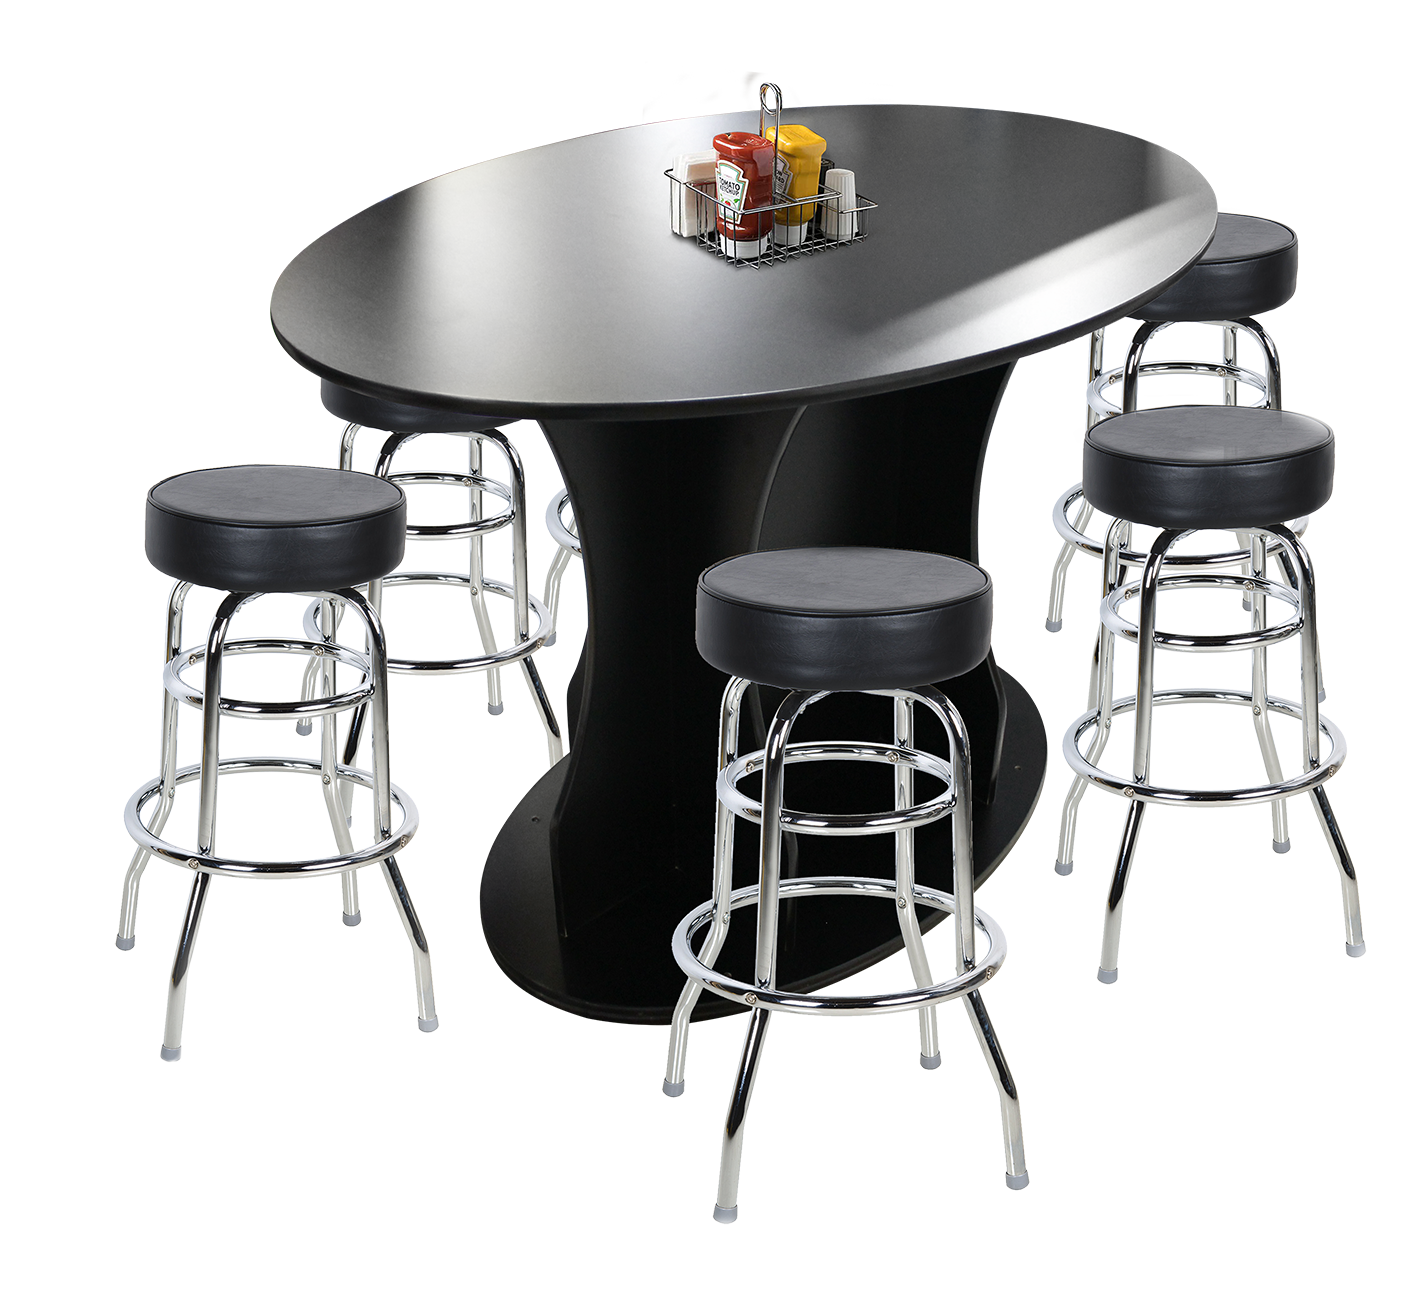 Pub Table shown with barstools (not included)